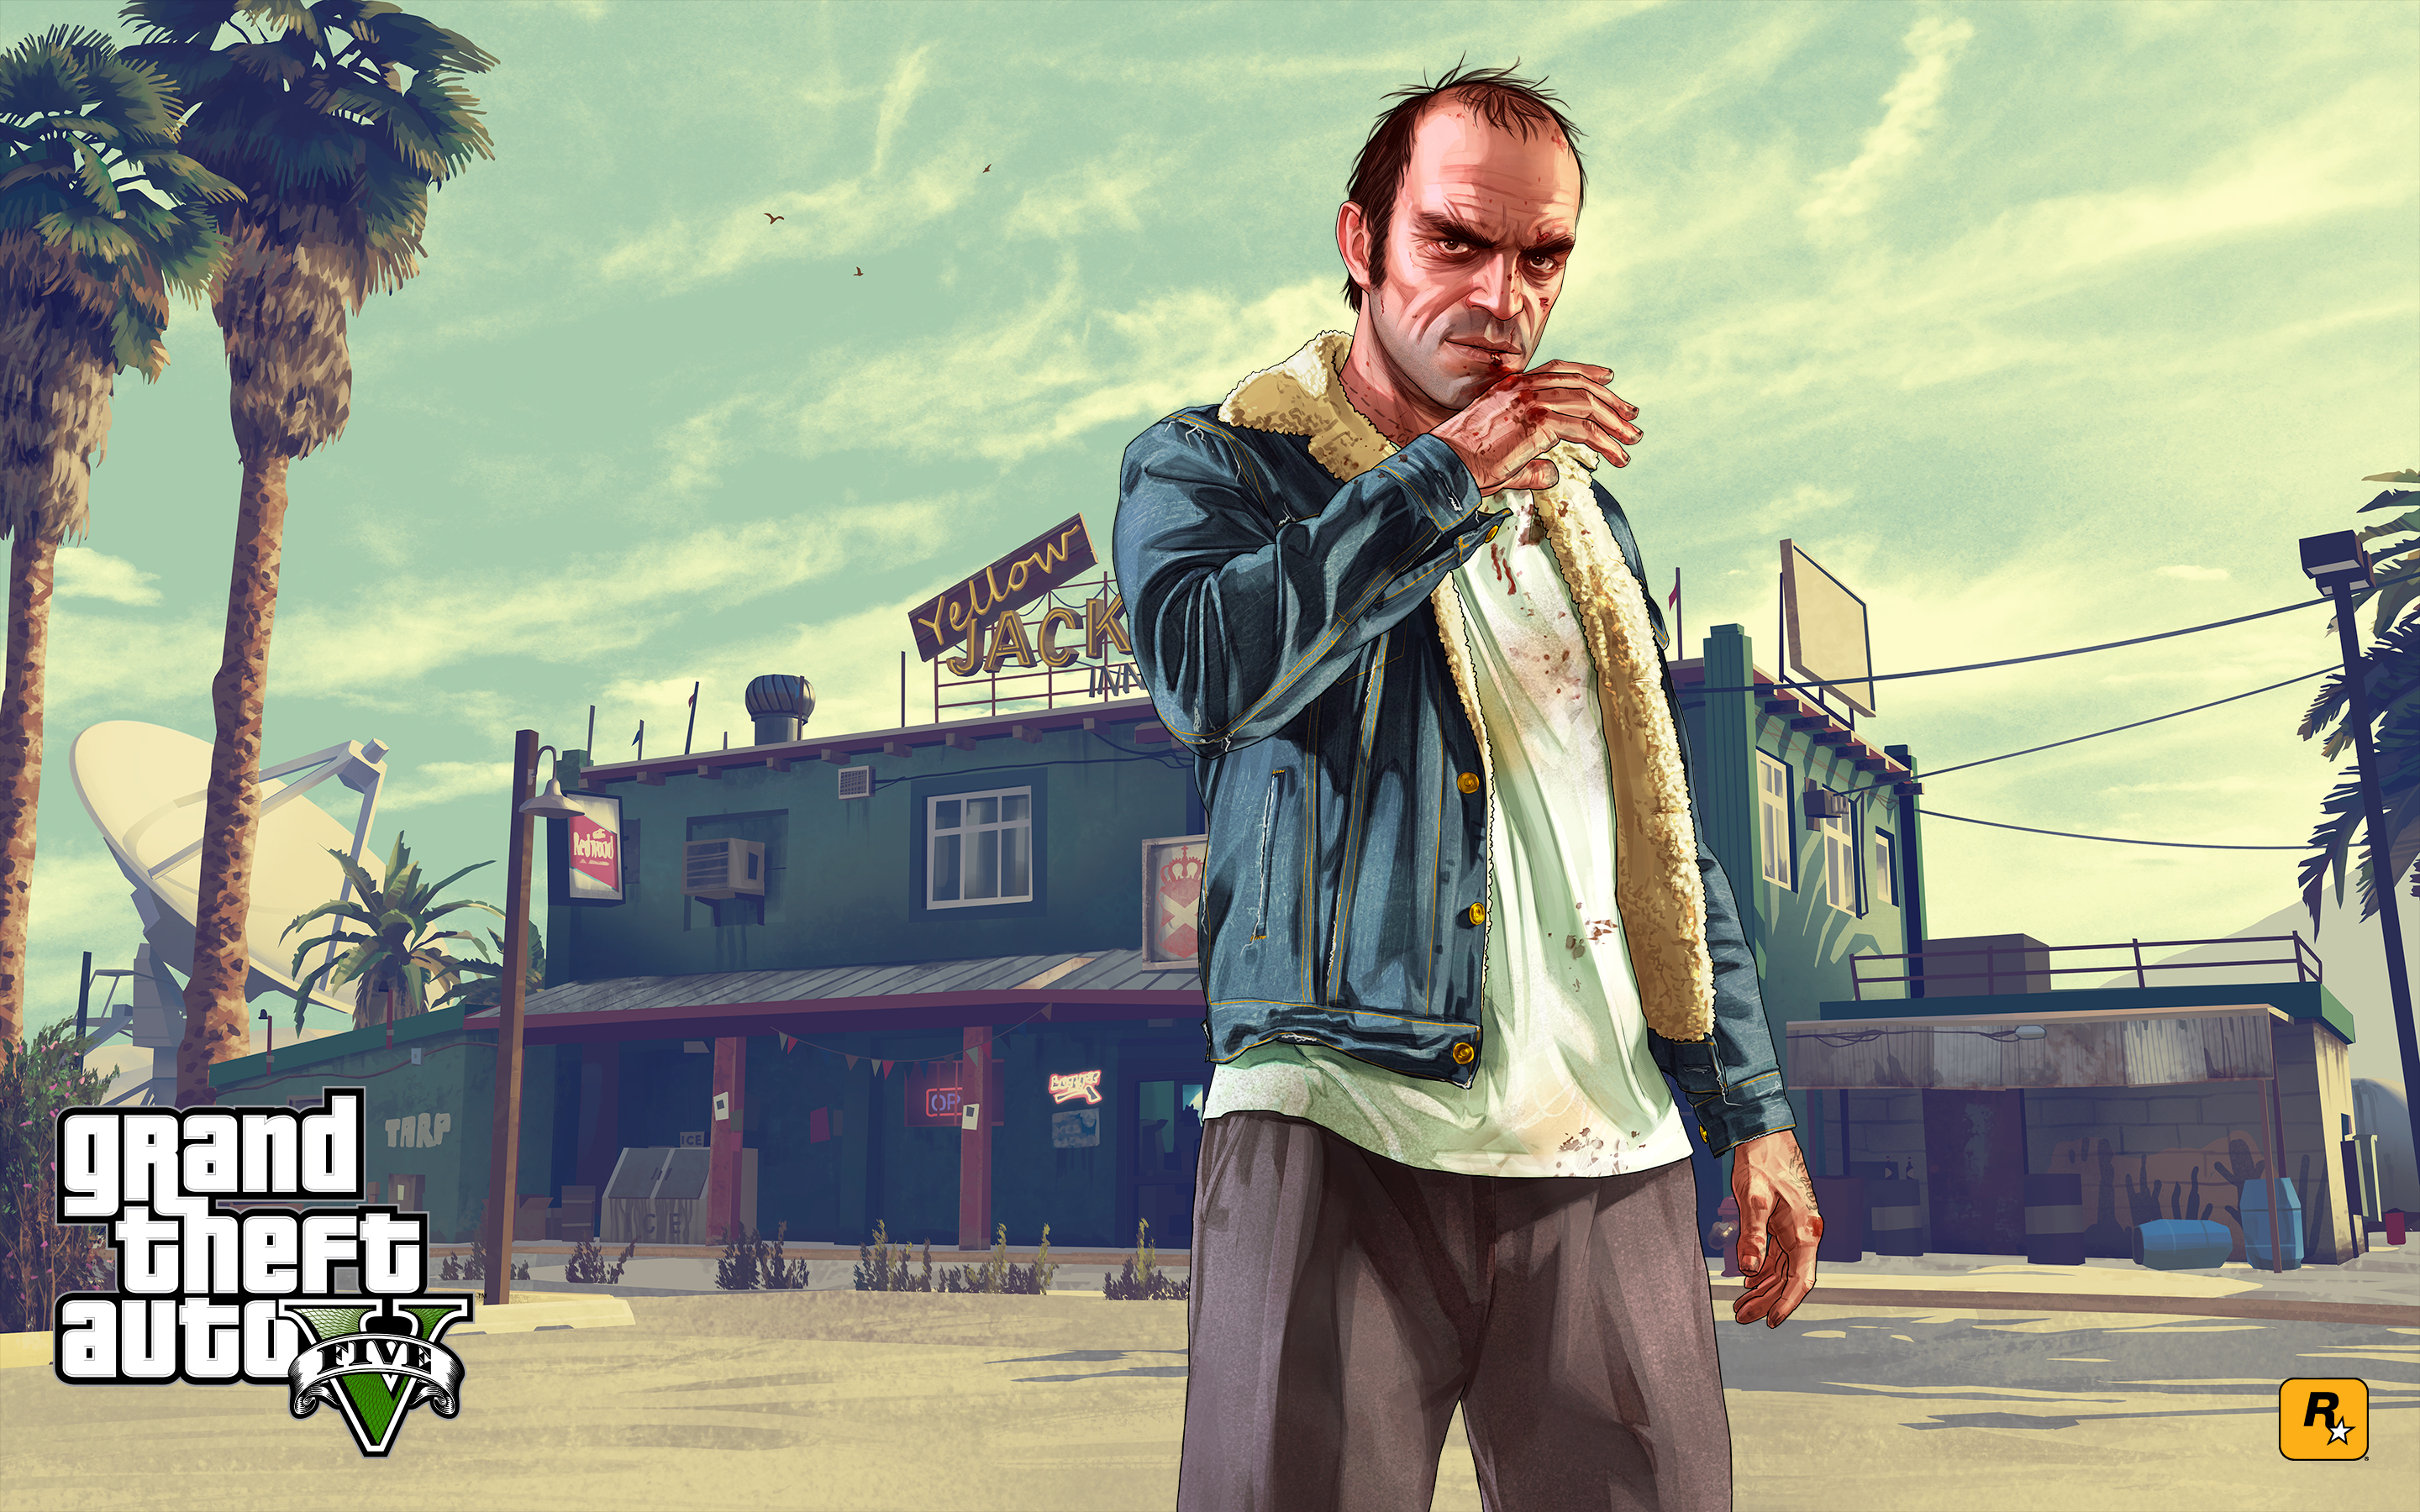 Thank You For Your Order >> Gta 5 Wallpapers, Pictures, Images